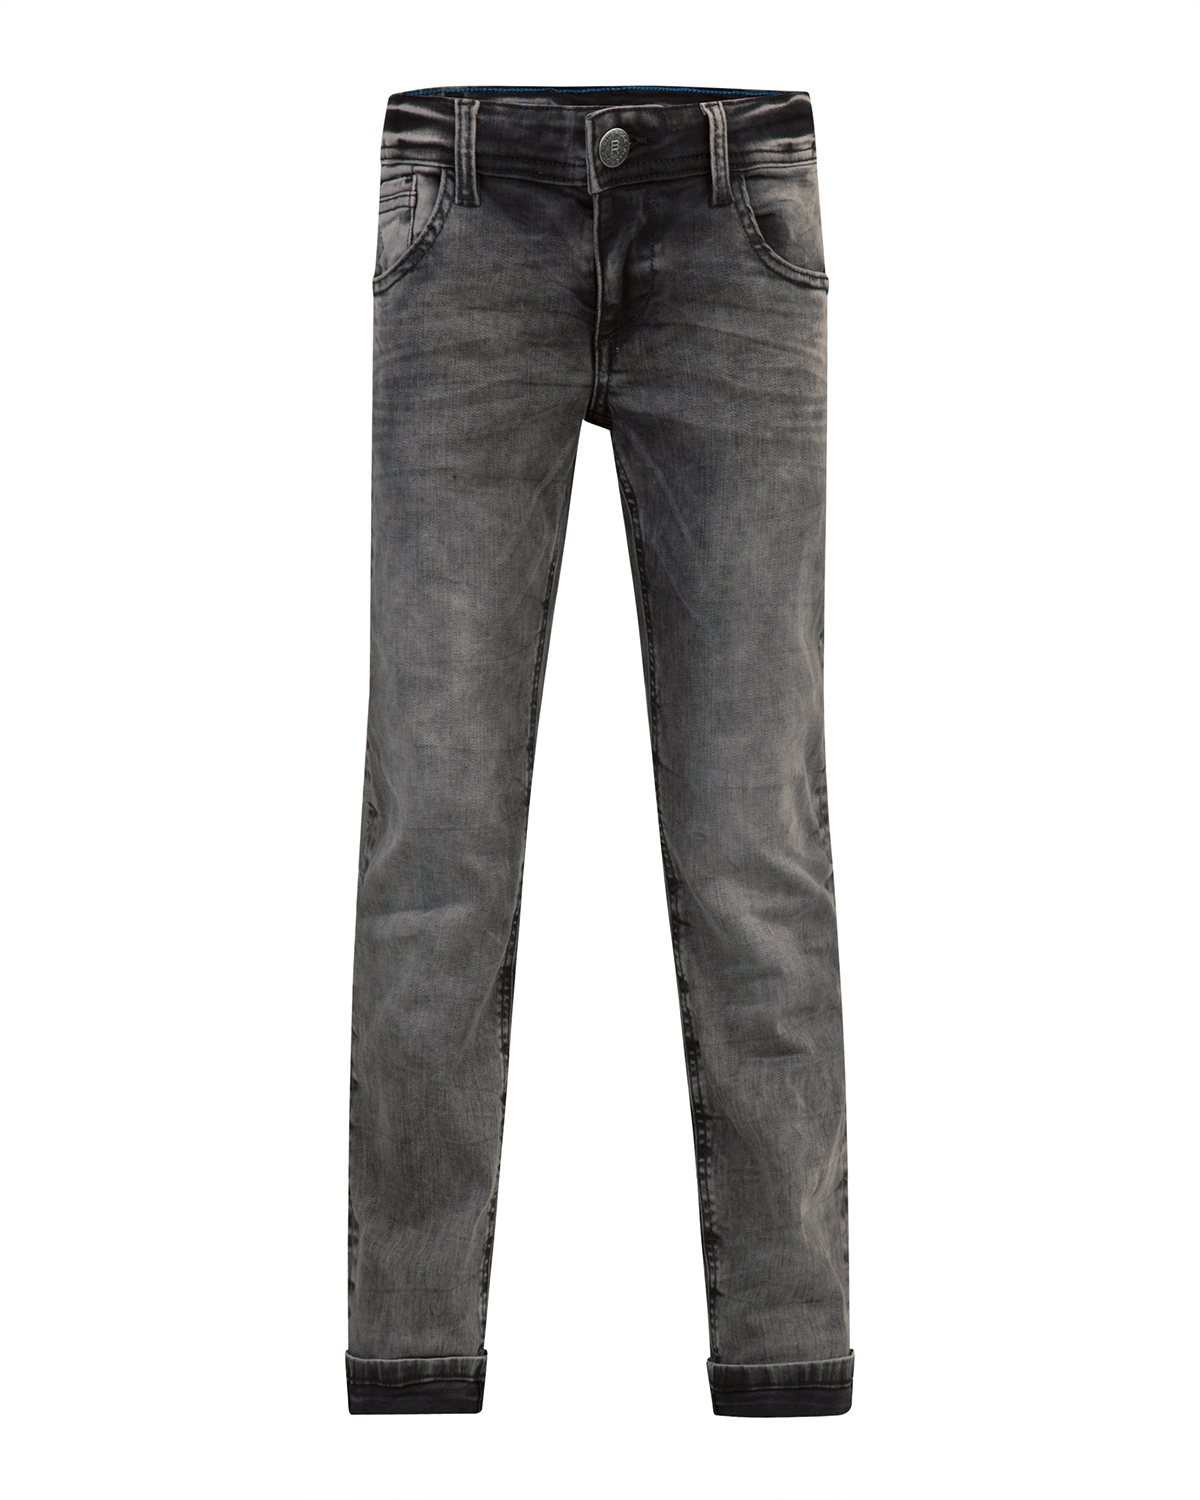 Jongens regular straight power stretch jeans